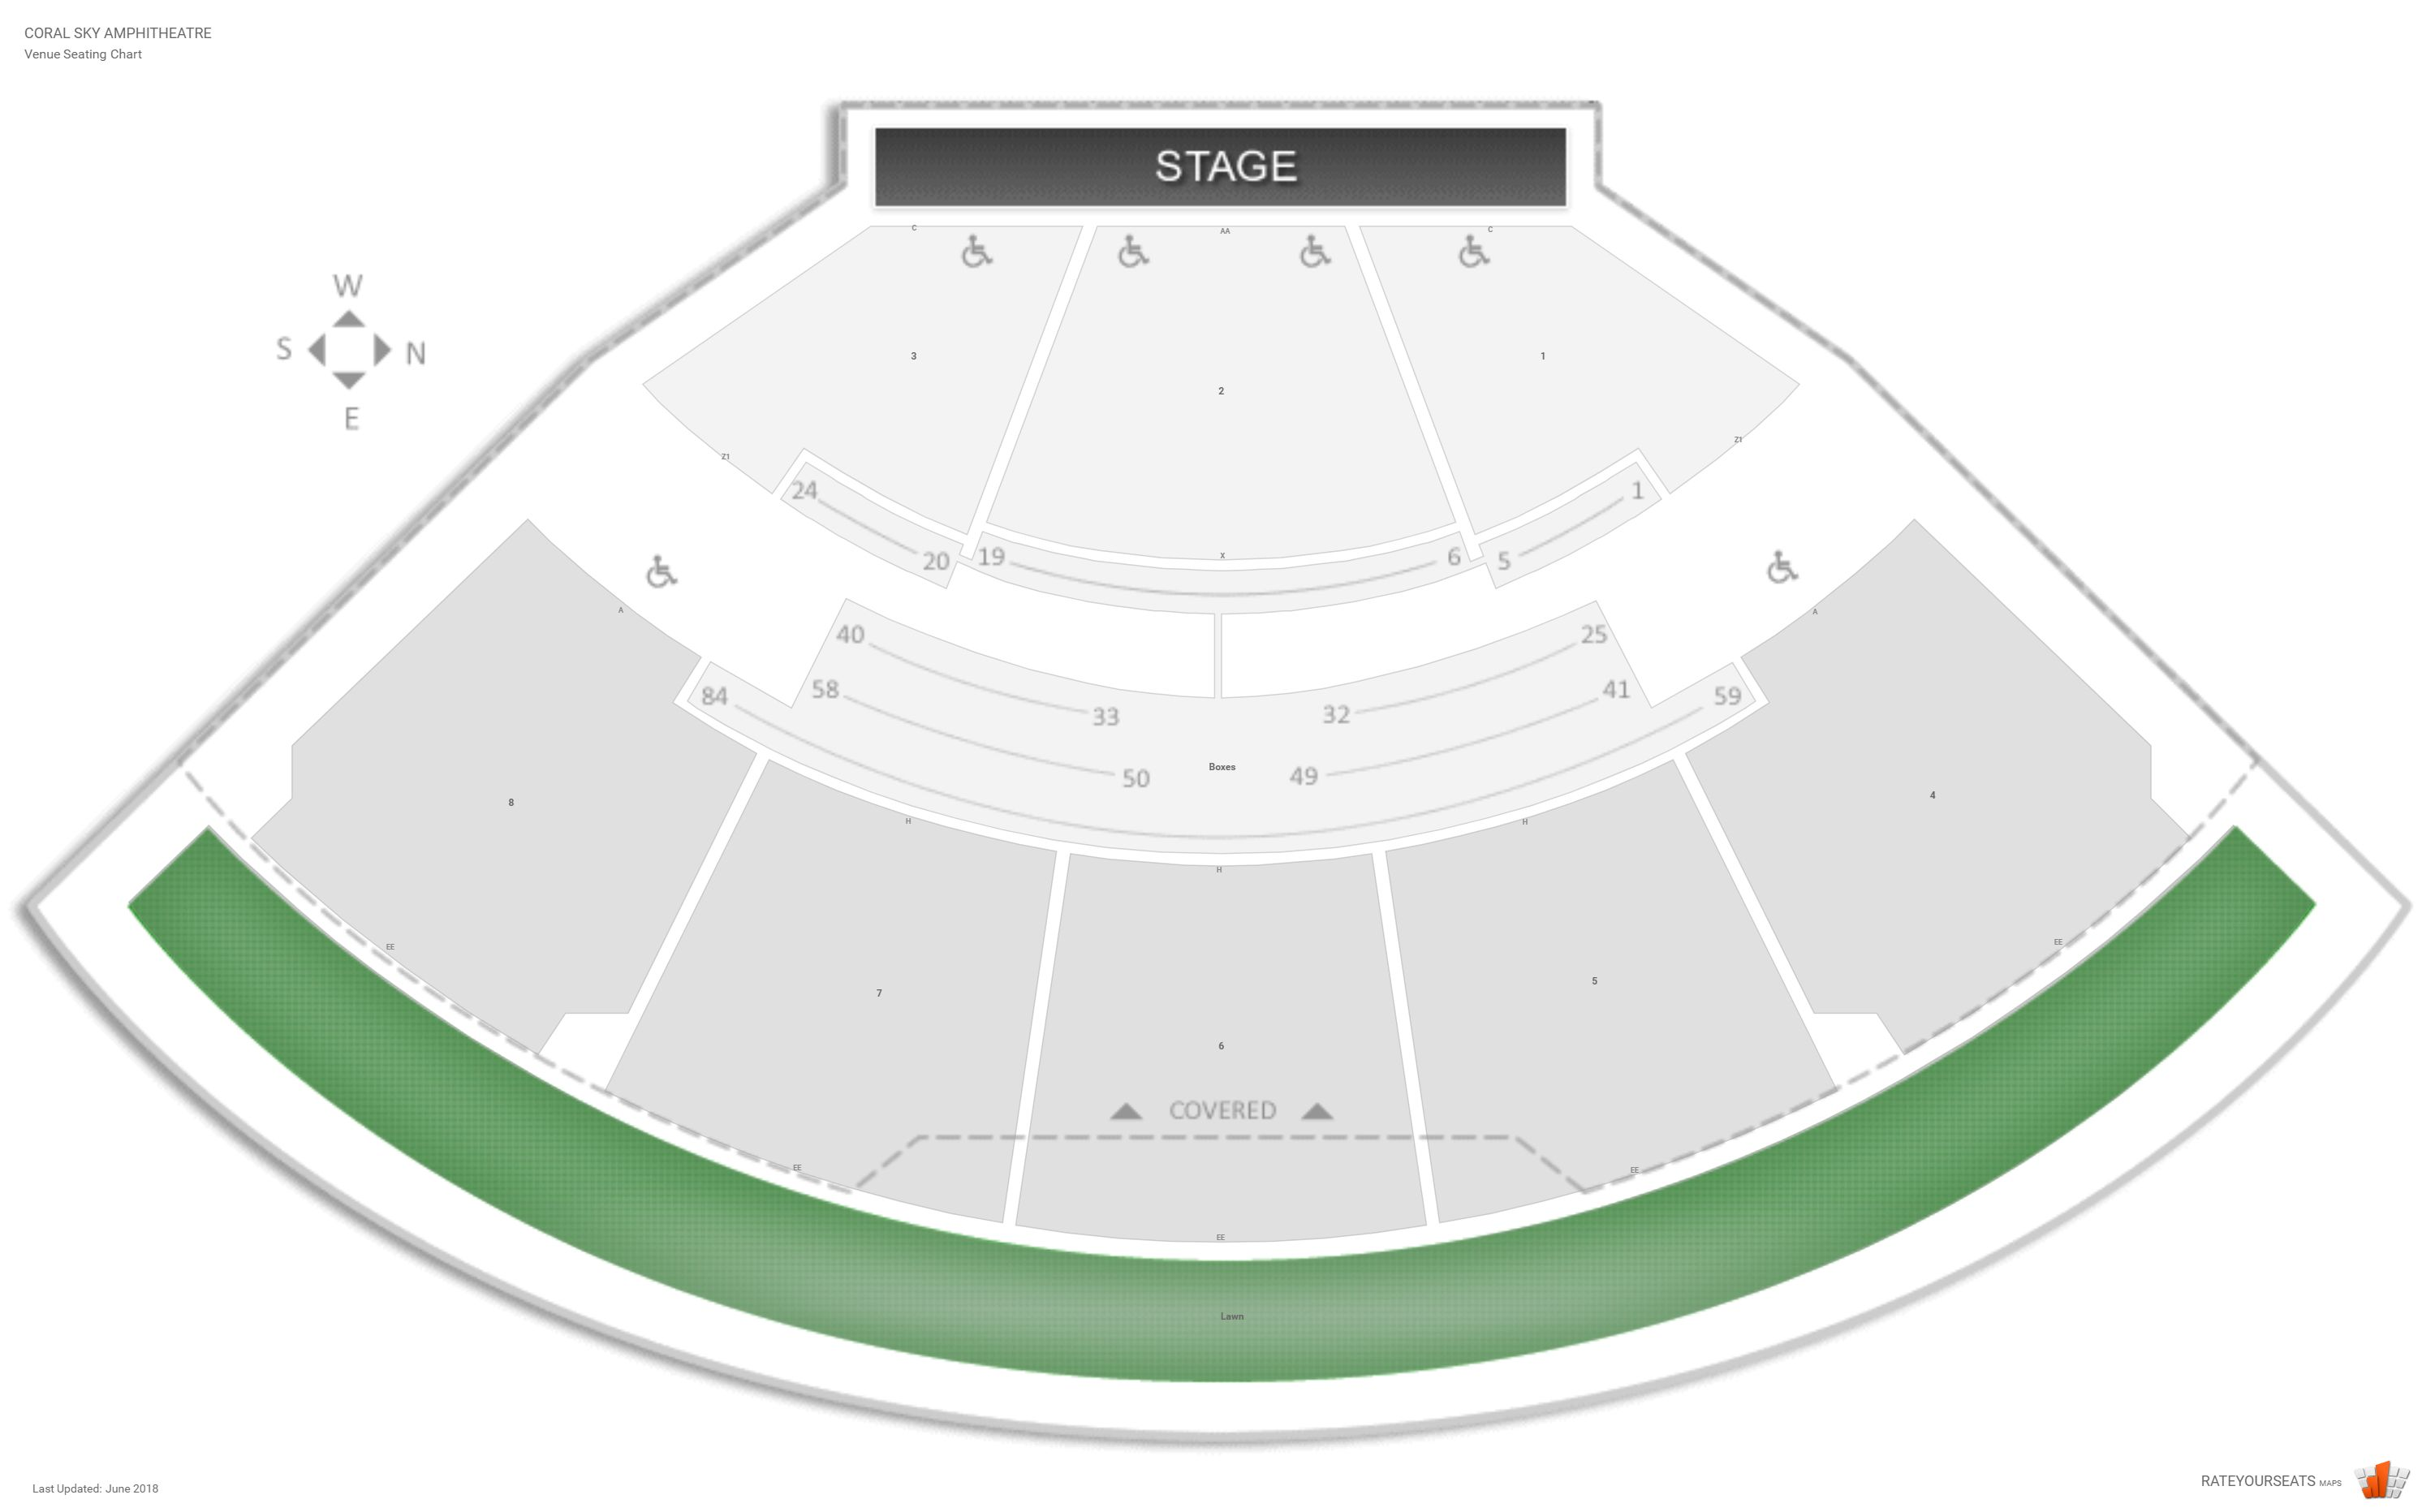 C Sky Amphitheatre Seating Chart With Row Numbers